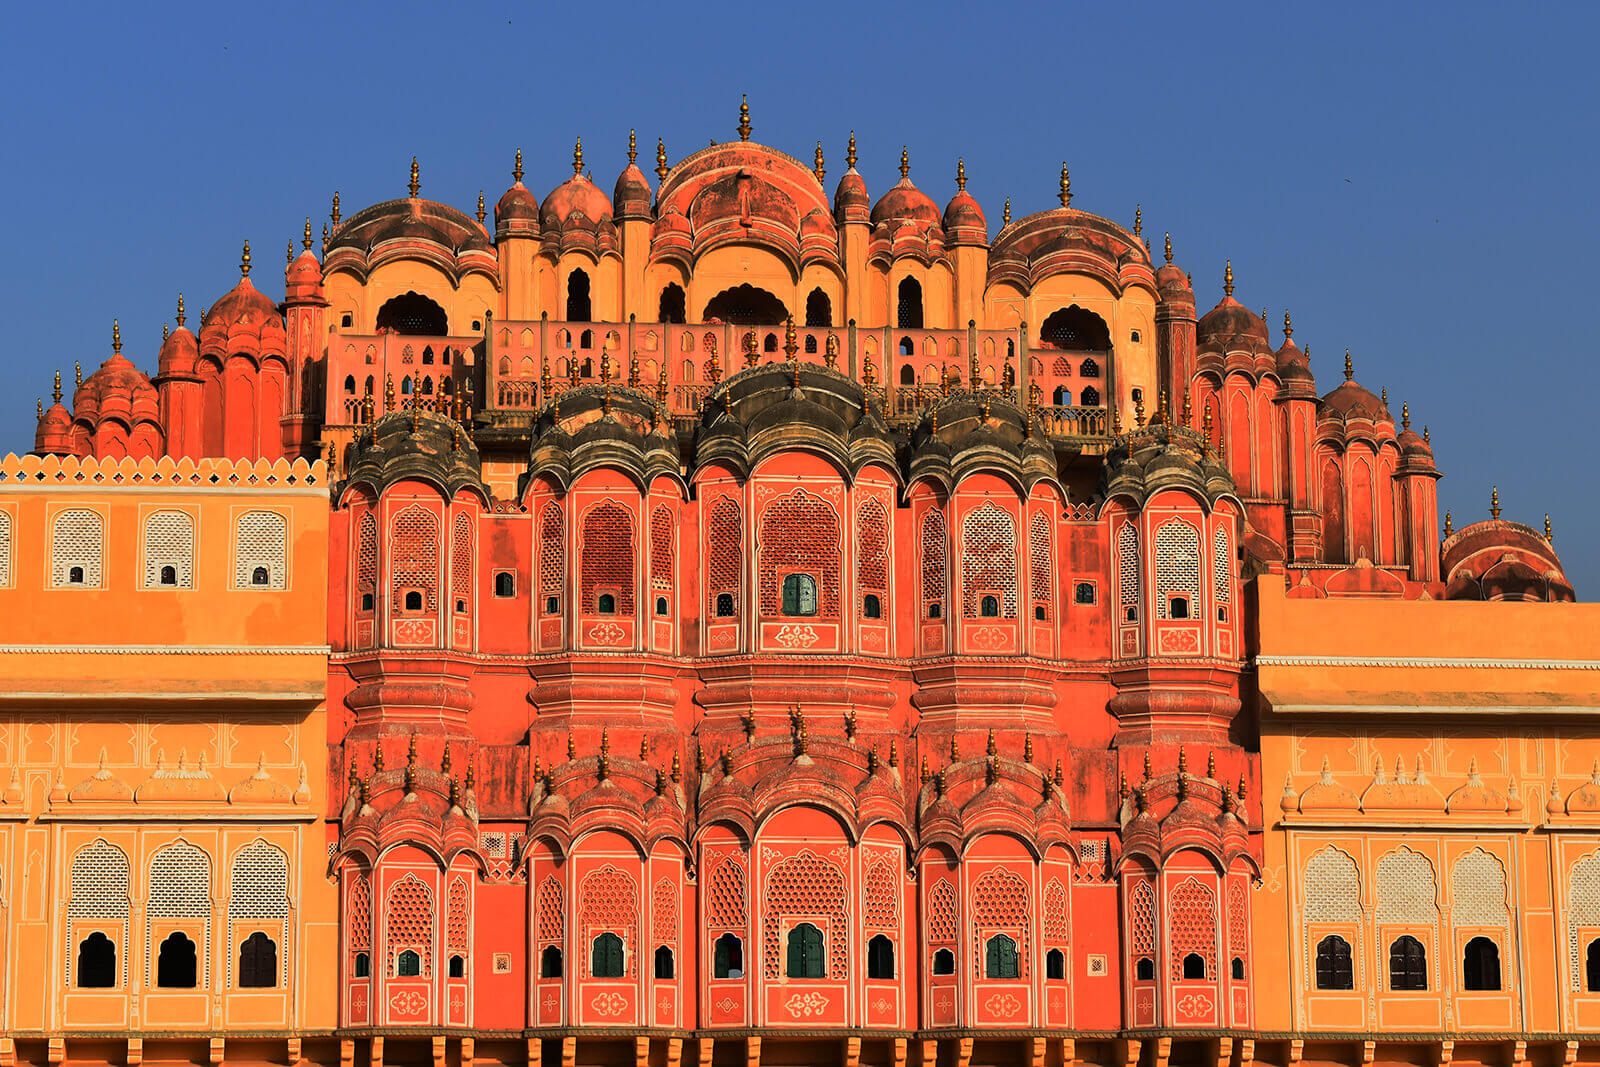 Hawa Mahal, also known as the Wind Palace, is one of the obligatory sights to visit in Jaipur, the Pink City of India